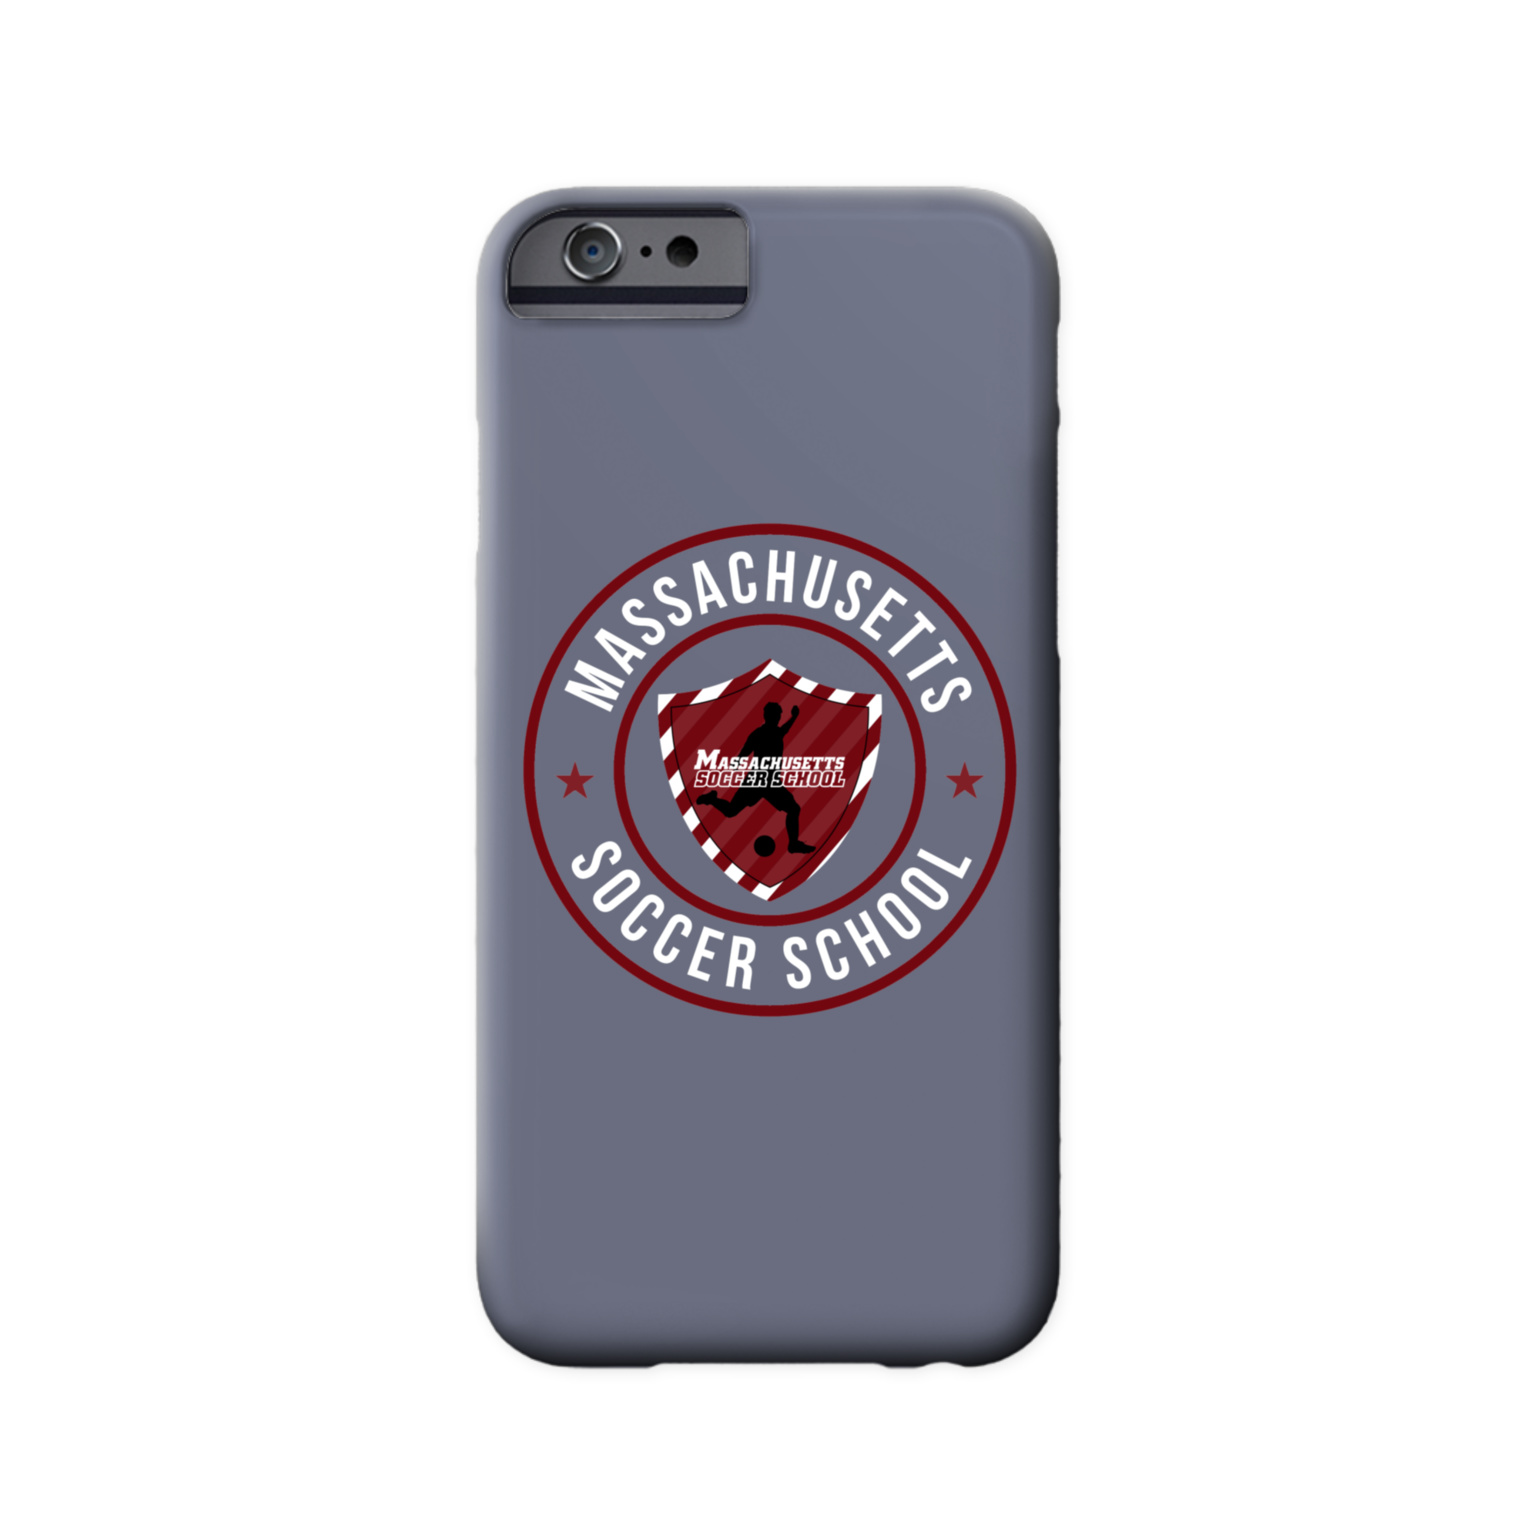 Massachusetts Soccer School Phone Case